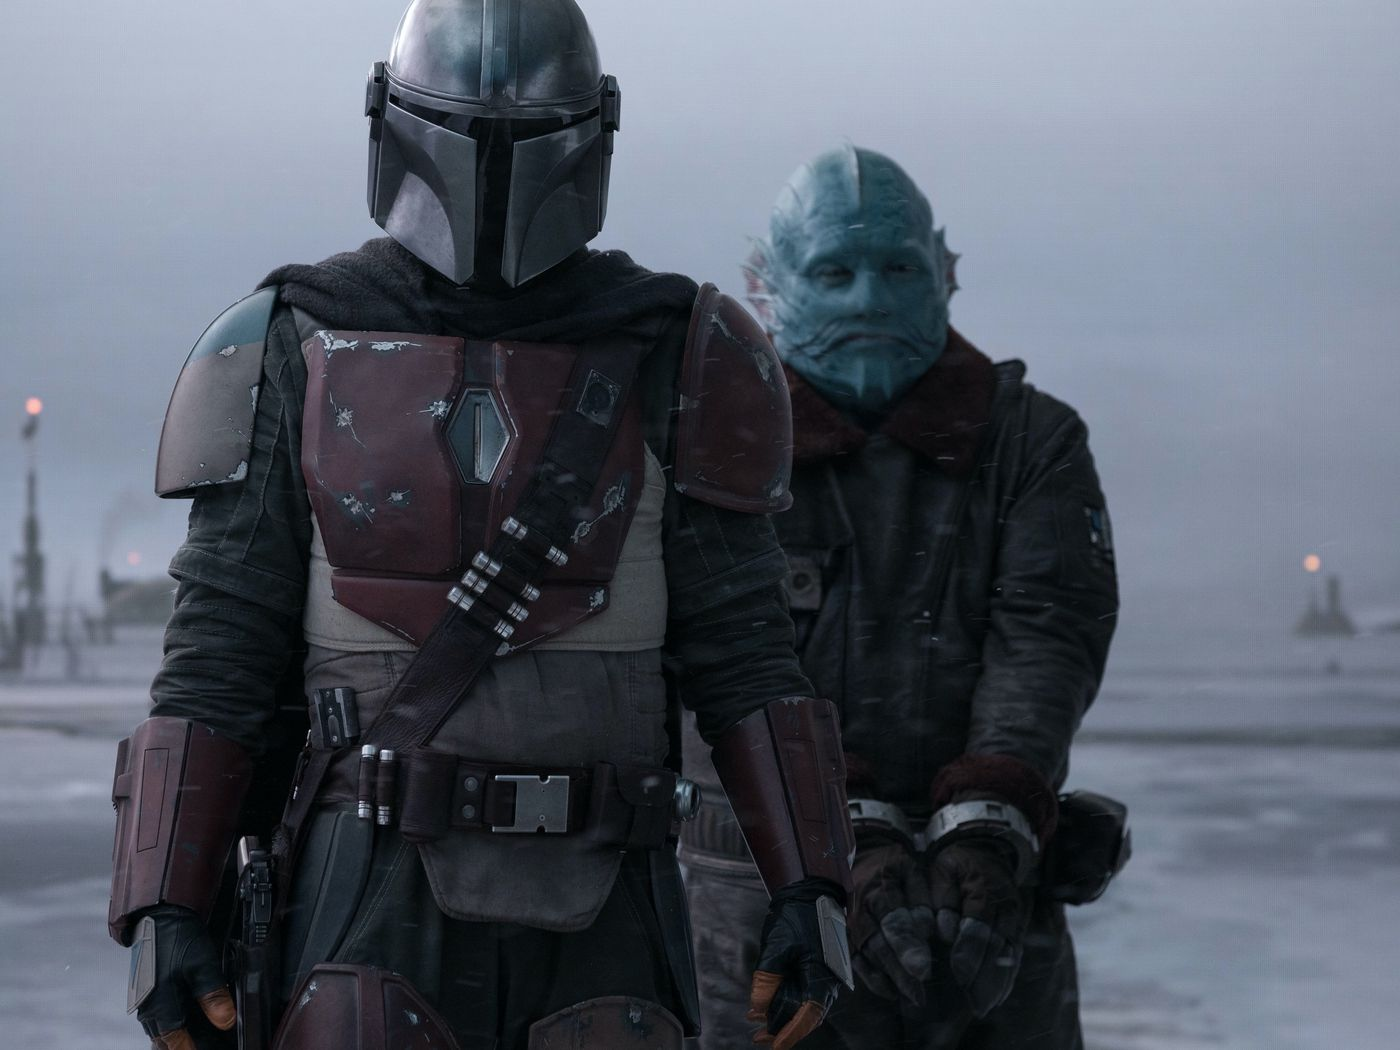 The Mandalorian Shows What Star Wars Future Looks Like Over The Next Few Years The Verge